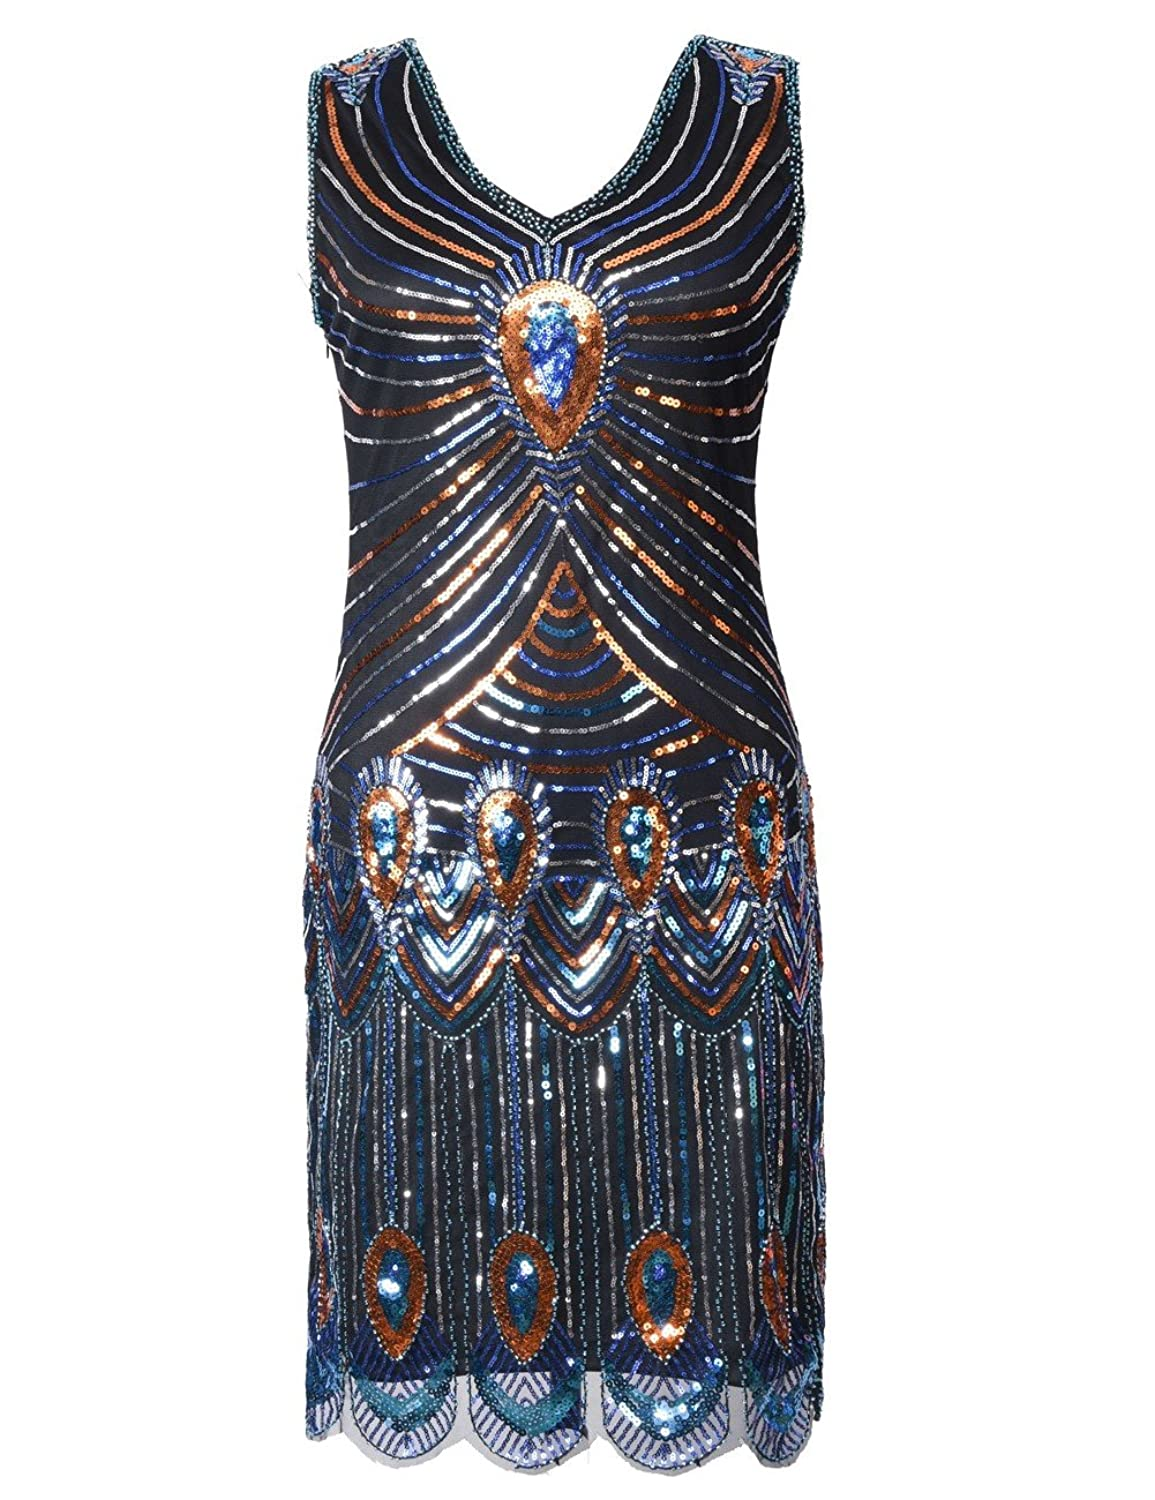 KAYAMIYA Women's 1920s Beaded Peacock Pattern Sequin Fringe Gatsby Flapper Dress